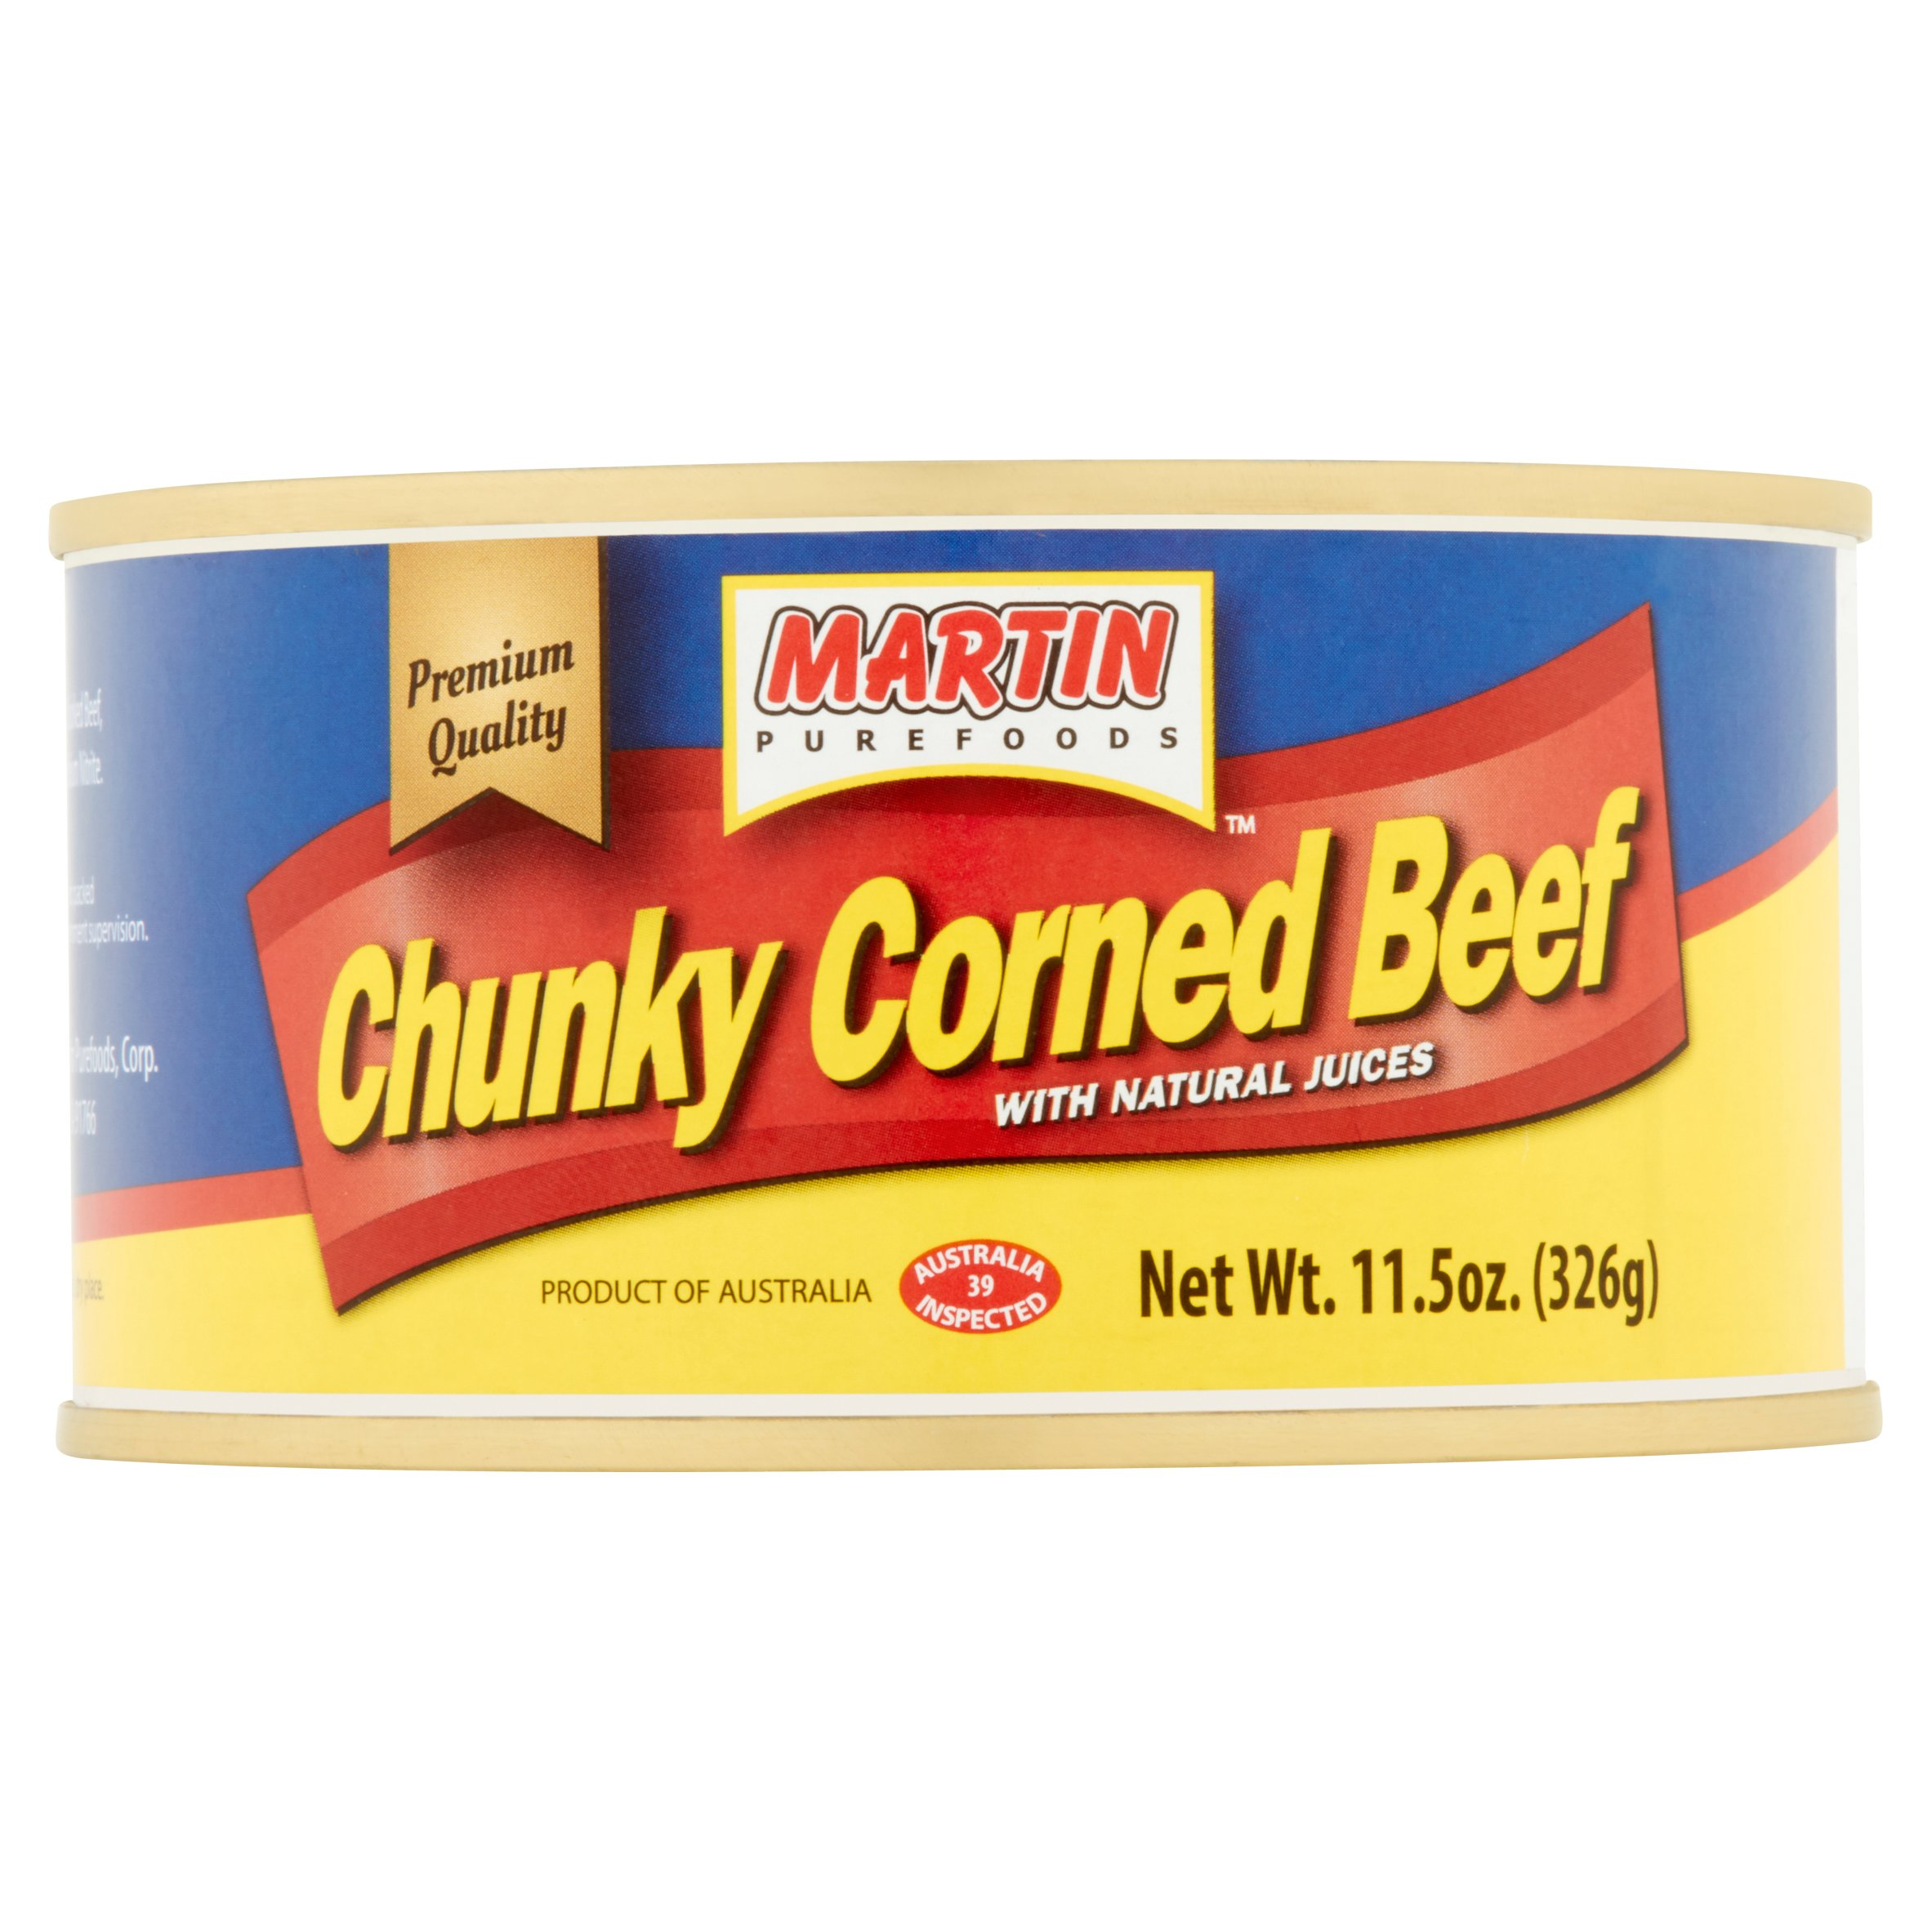 Martin Purefoods Chunky Corned Beef, 11.5 oz by Martin Purefoods, Corp.